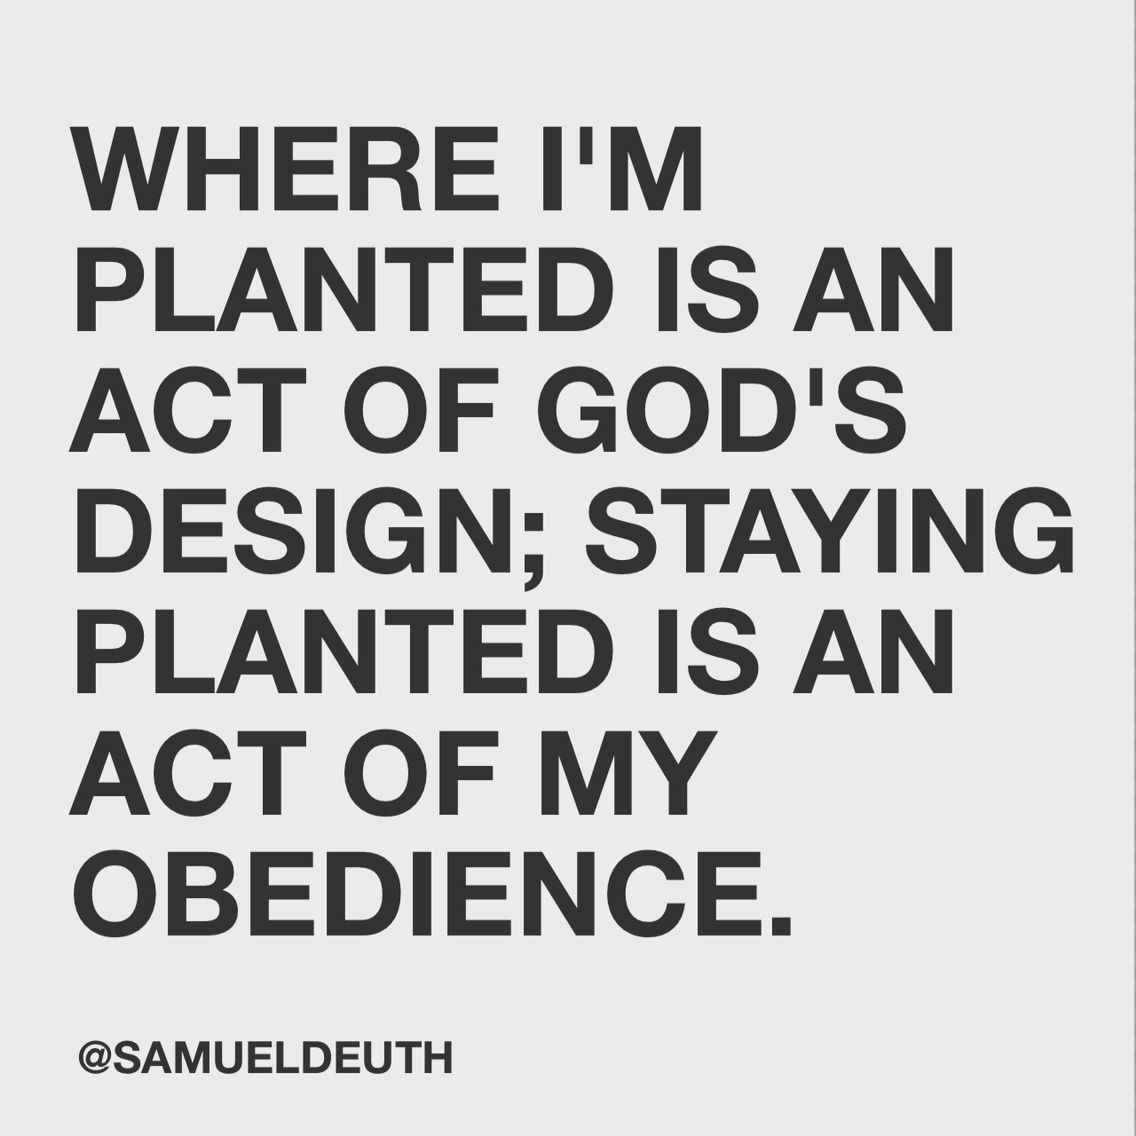 Stay planted; keep thriving. Thank you Jesus for my church